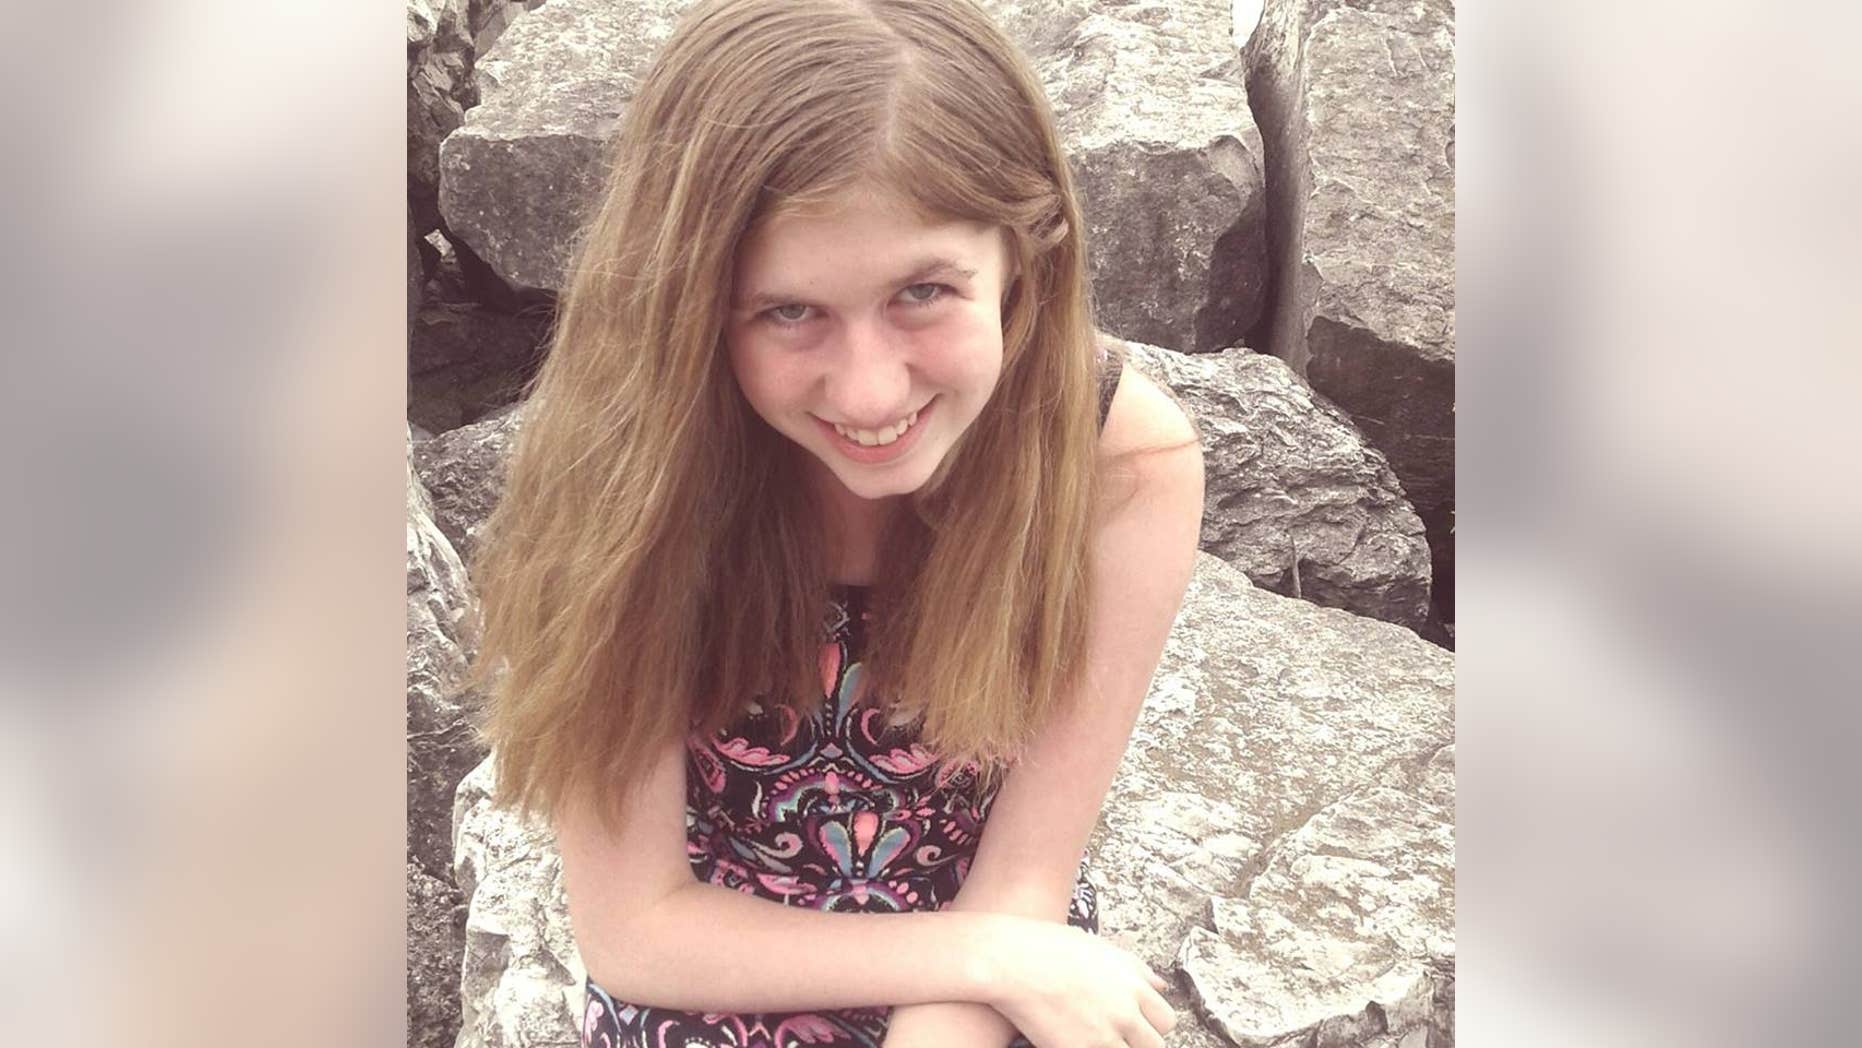 Jayme Closs, 13, was reported missing after police discovered her parents dead inside their Wisconsin home.